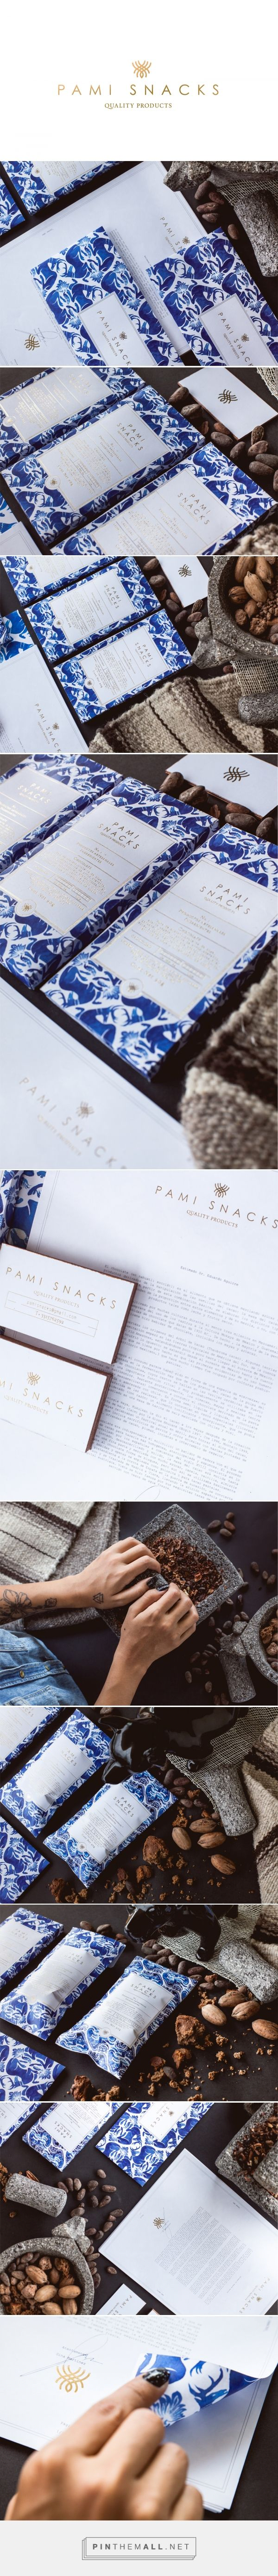 PAMI Snacks Branding and Packaging by Daniel Barba | Fivestar Branding Agency – Design and Branding Agency & Curated Inspiration Gallery